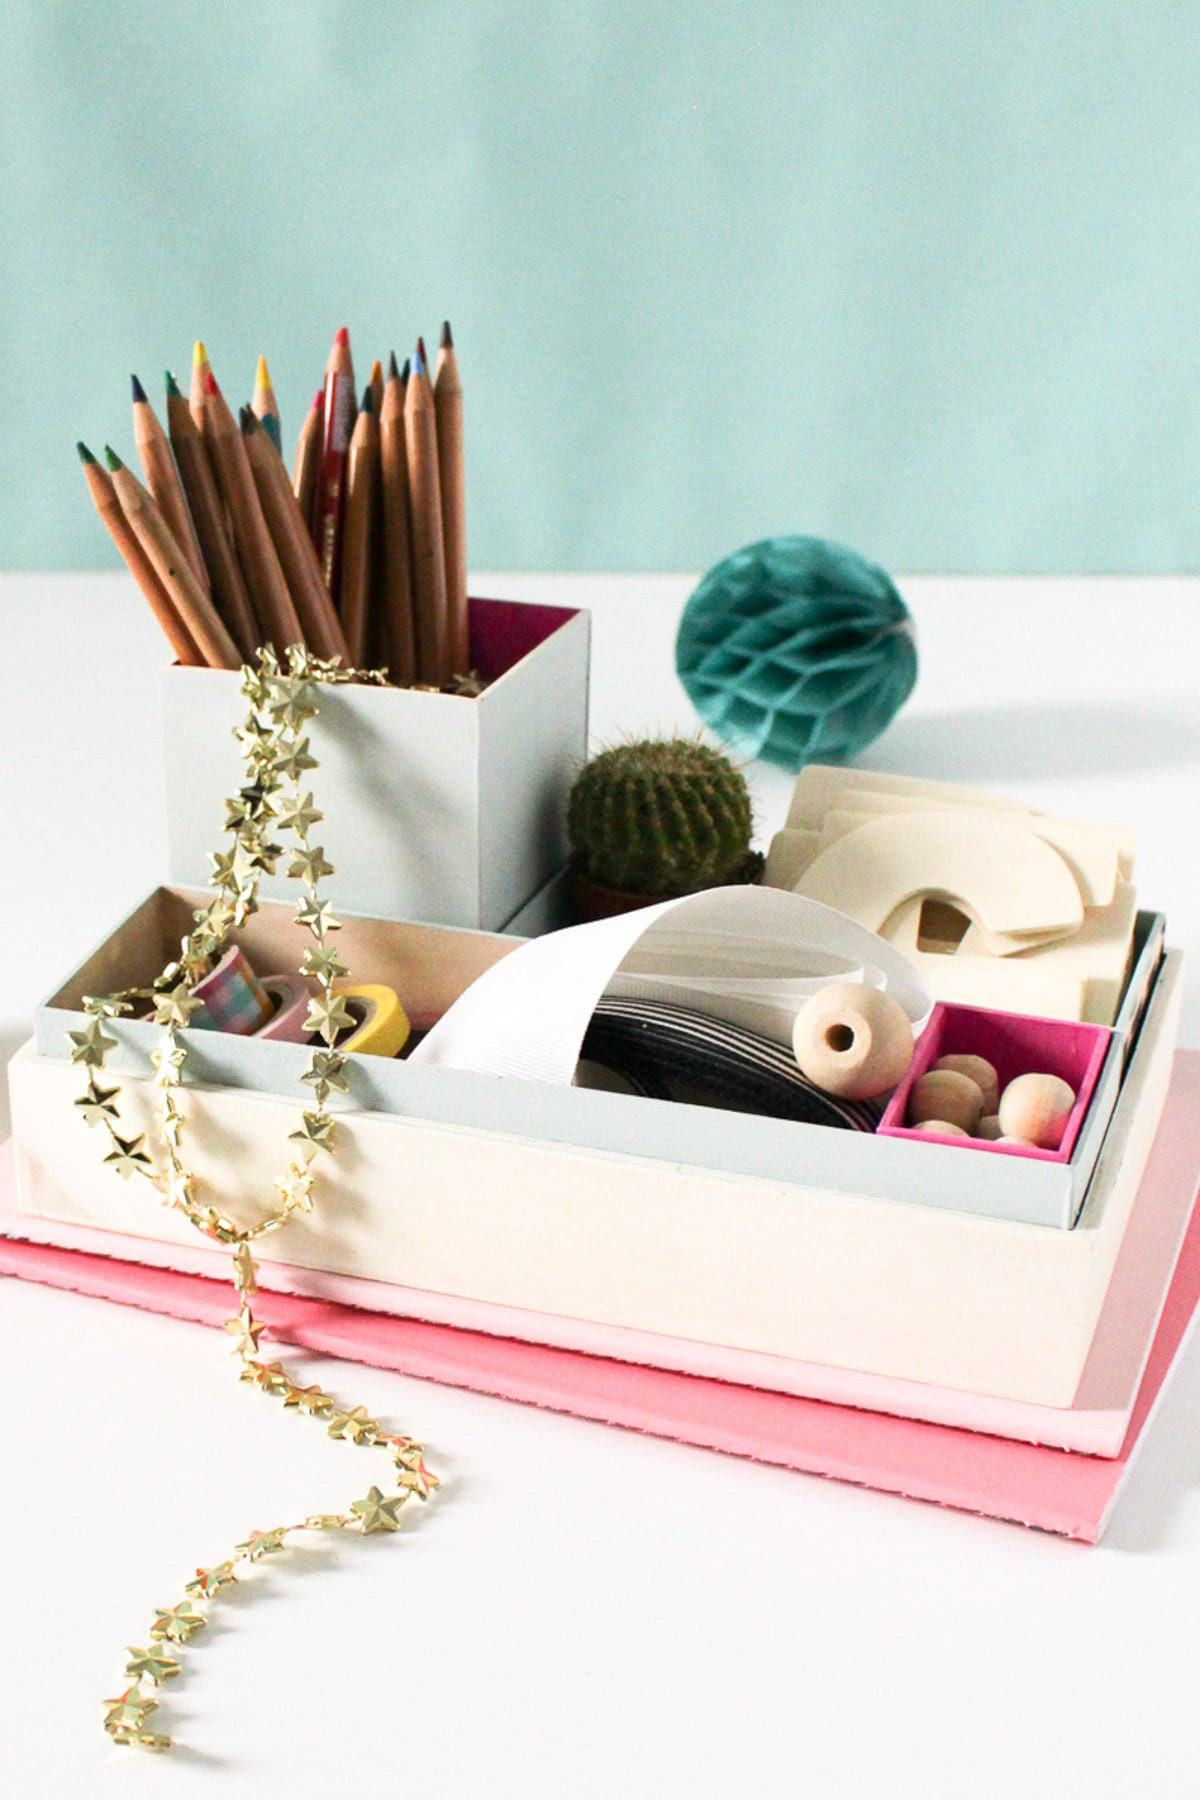 Best ideas about DIY Desk Organizer Ideas . Save or Pin DIY Nesting Desk Organizer Now.